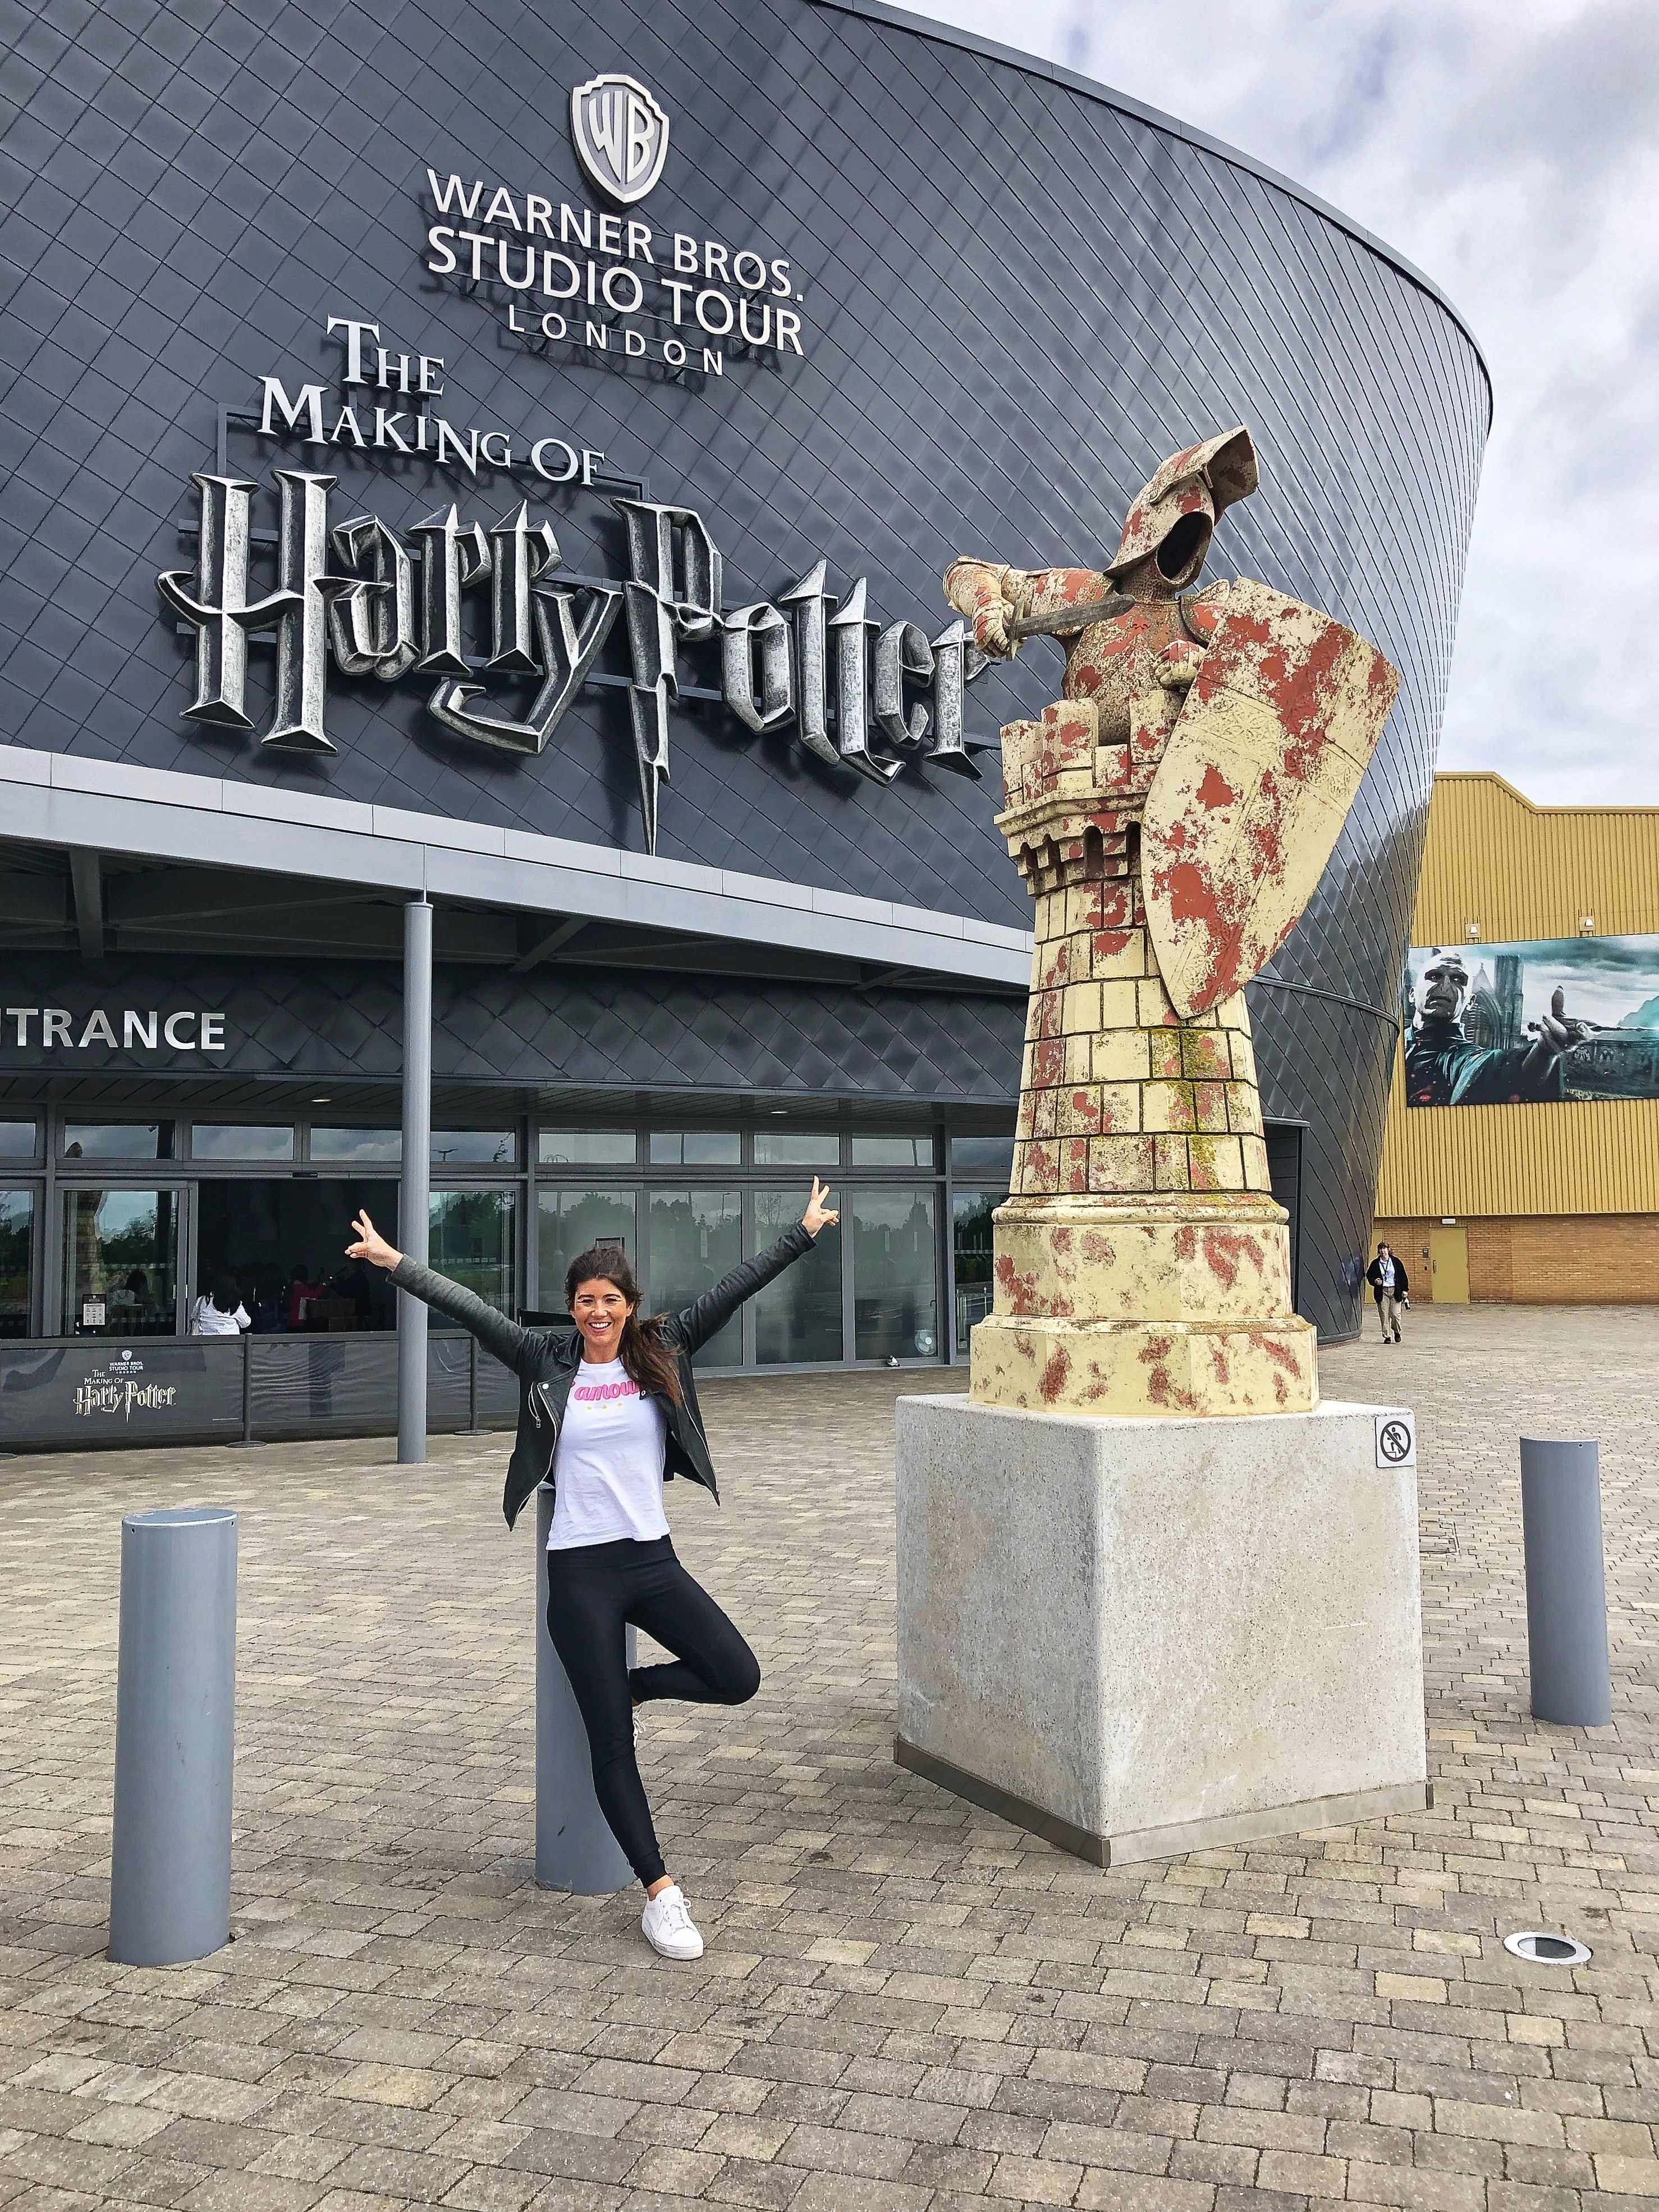 As 2019 Has Recently Started It S Time To Set New Travel Goals For The New Year My Trips Are Inspi Harry Potter Tour Harry Potter Studios Harry Potter London